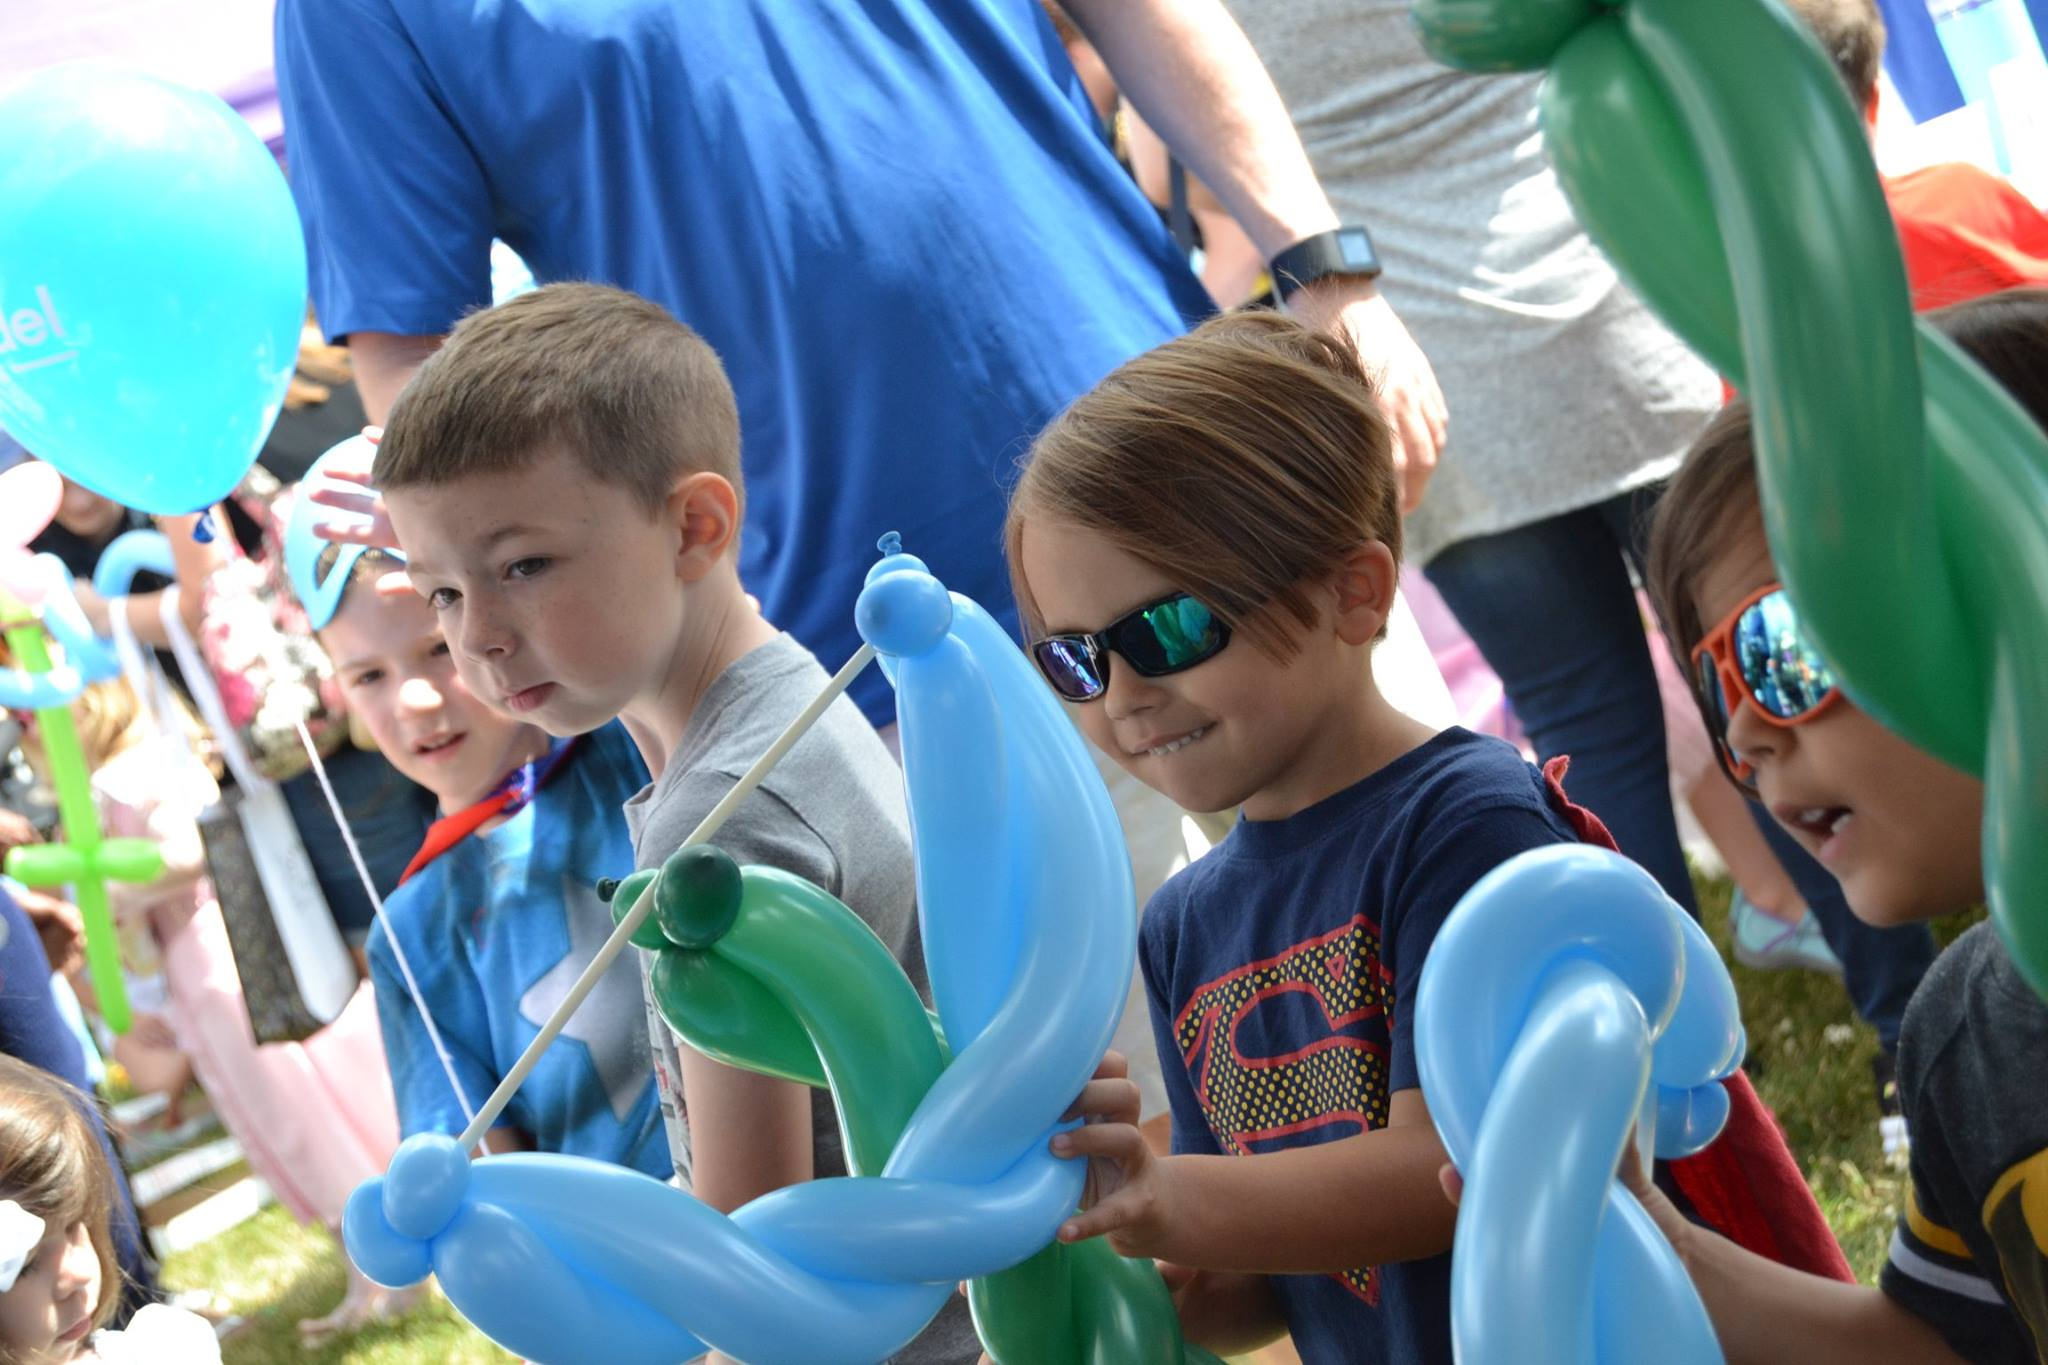 Balloon creations by The Twister Girl at Eton Explorers